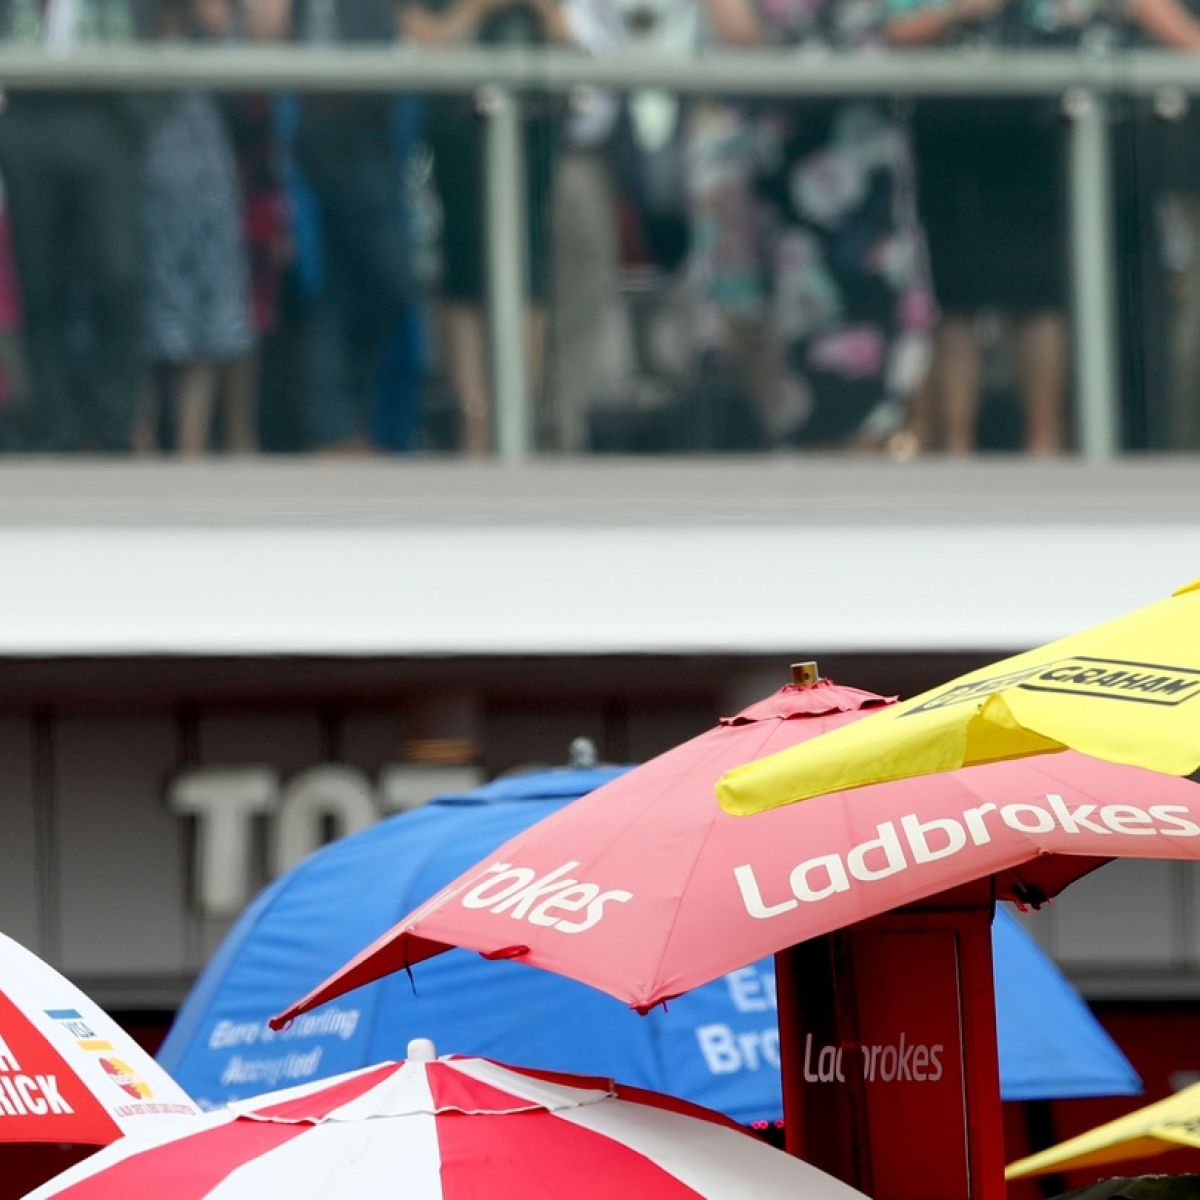 Ladbrokes And Coral To Vanish From UK And Ireland Race Courses